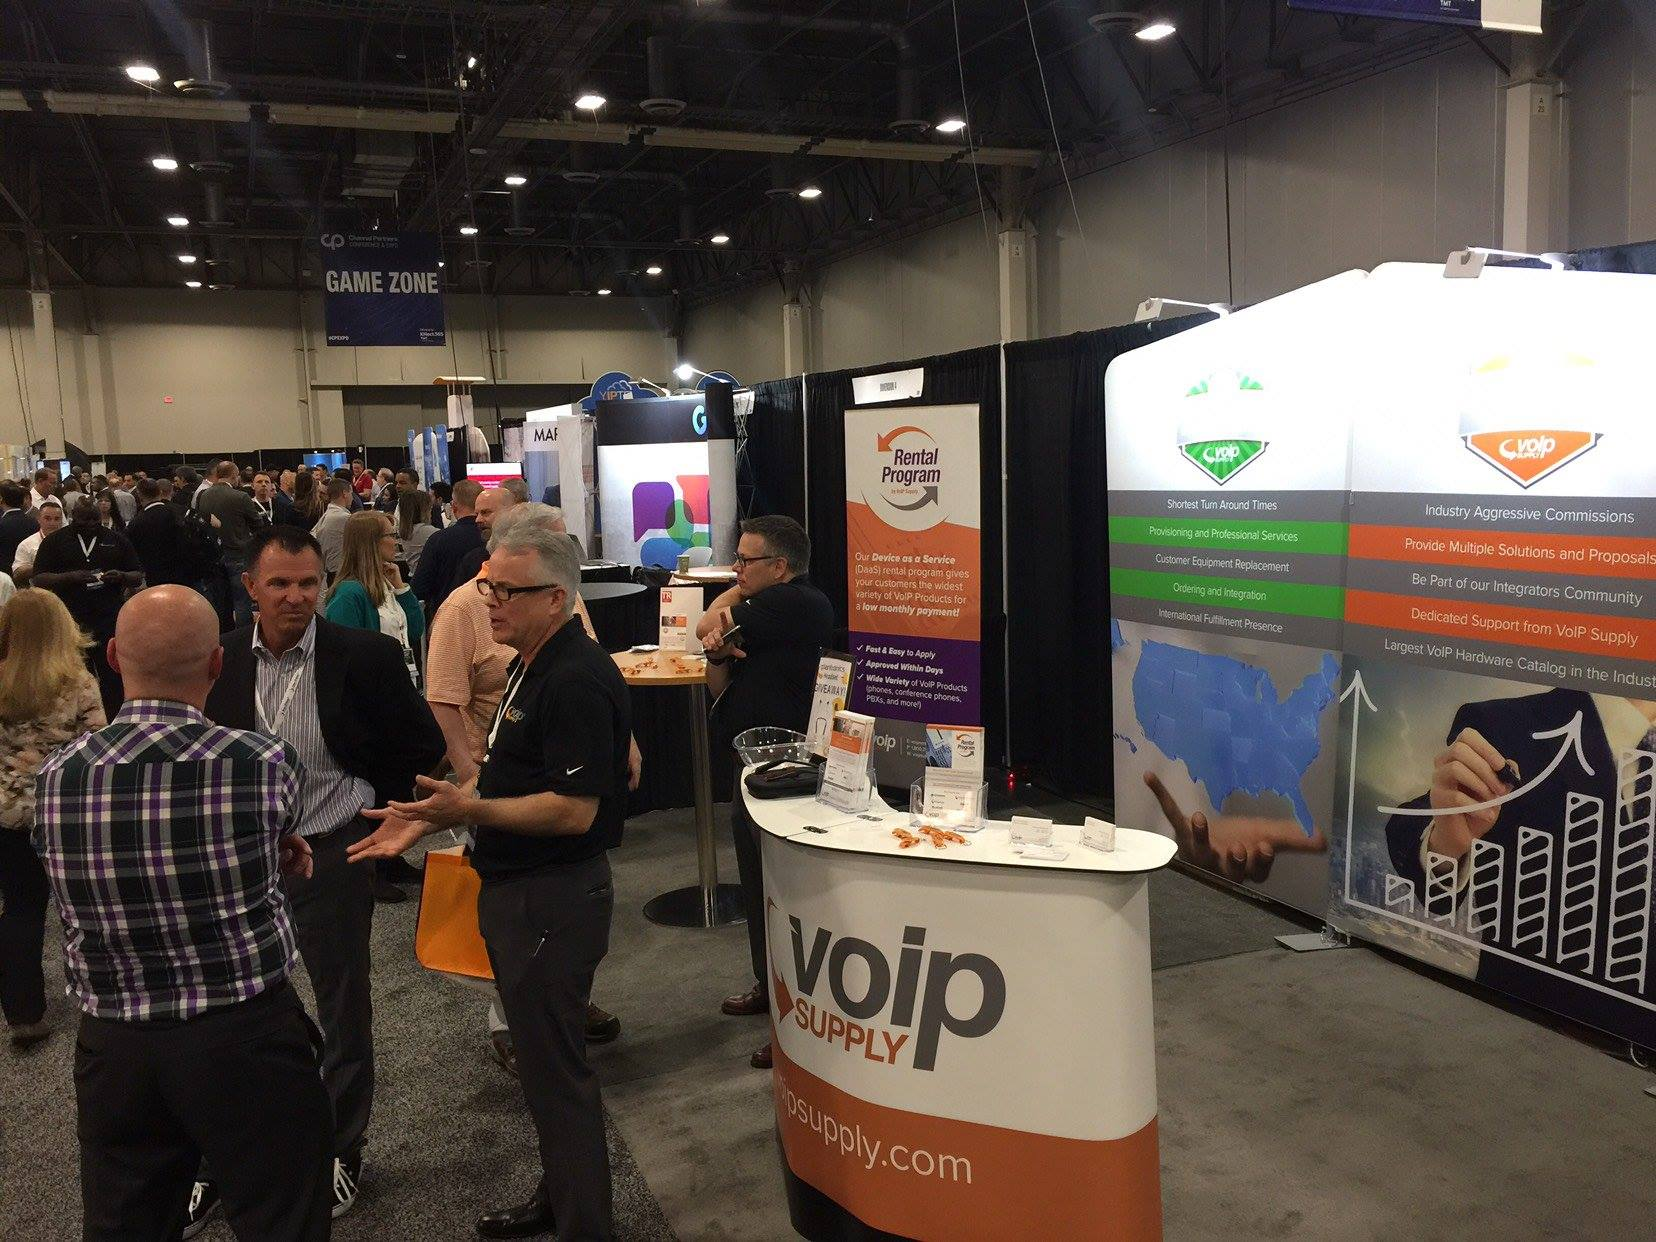 VoIP Supply Booth at Trade Show